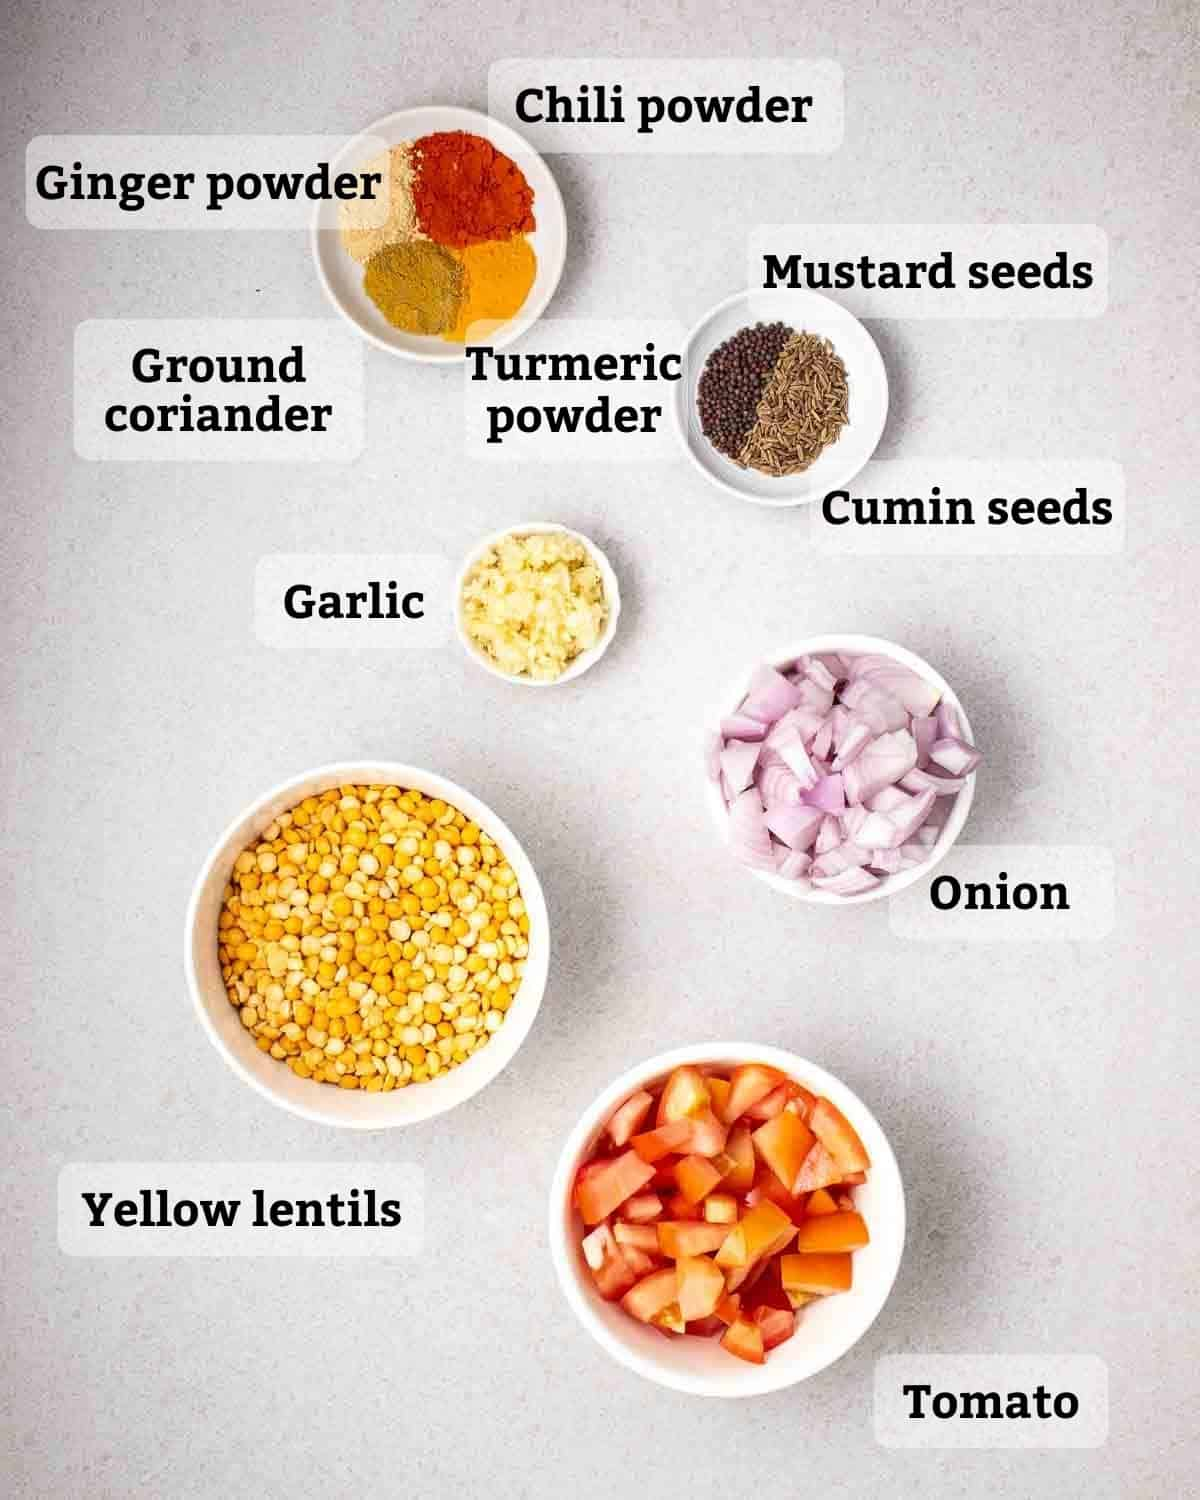 Ingredients needed like yellow lentils, tomato, onion, garlic and spices on a grey background.